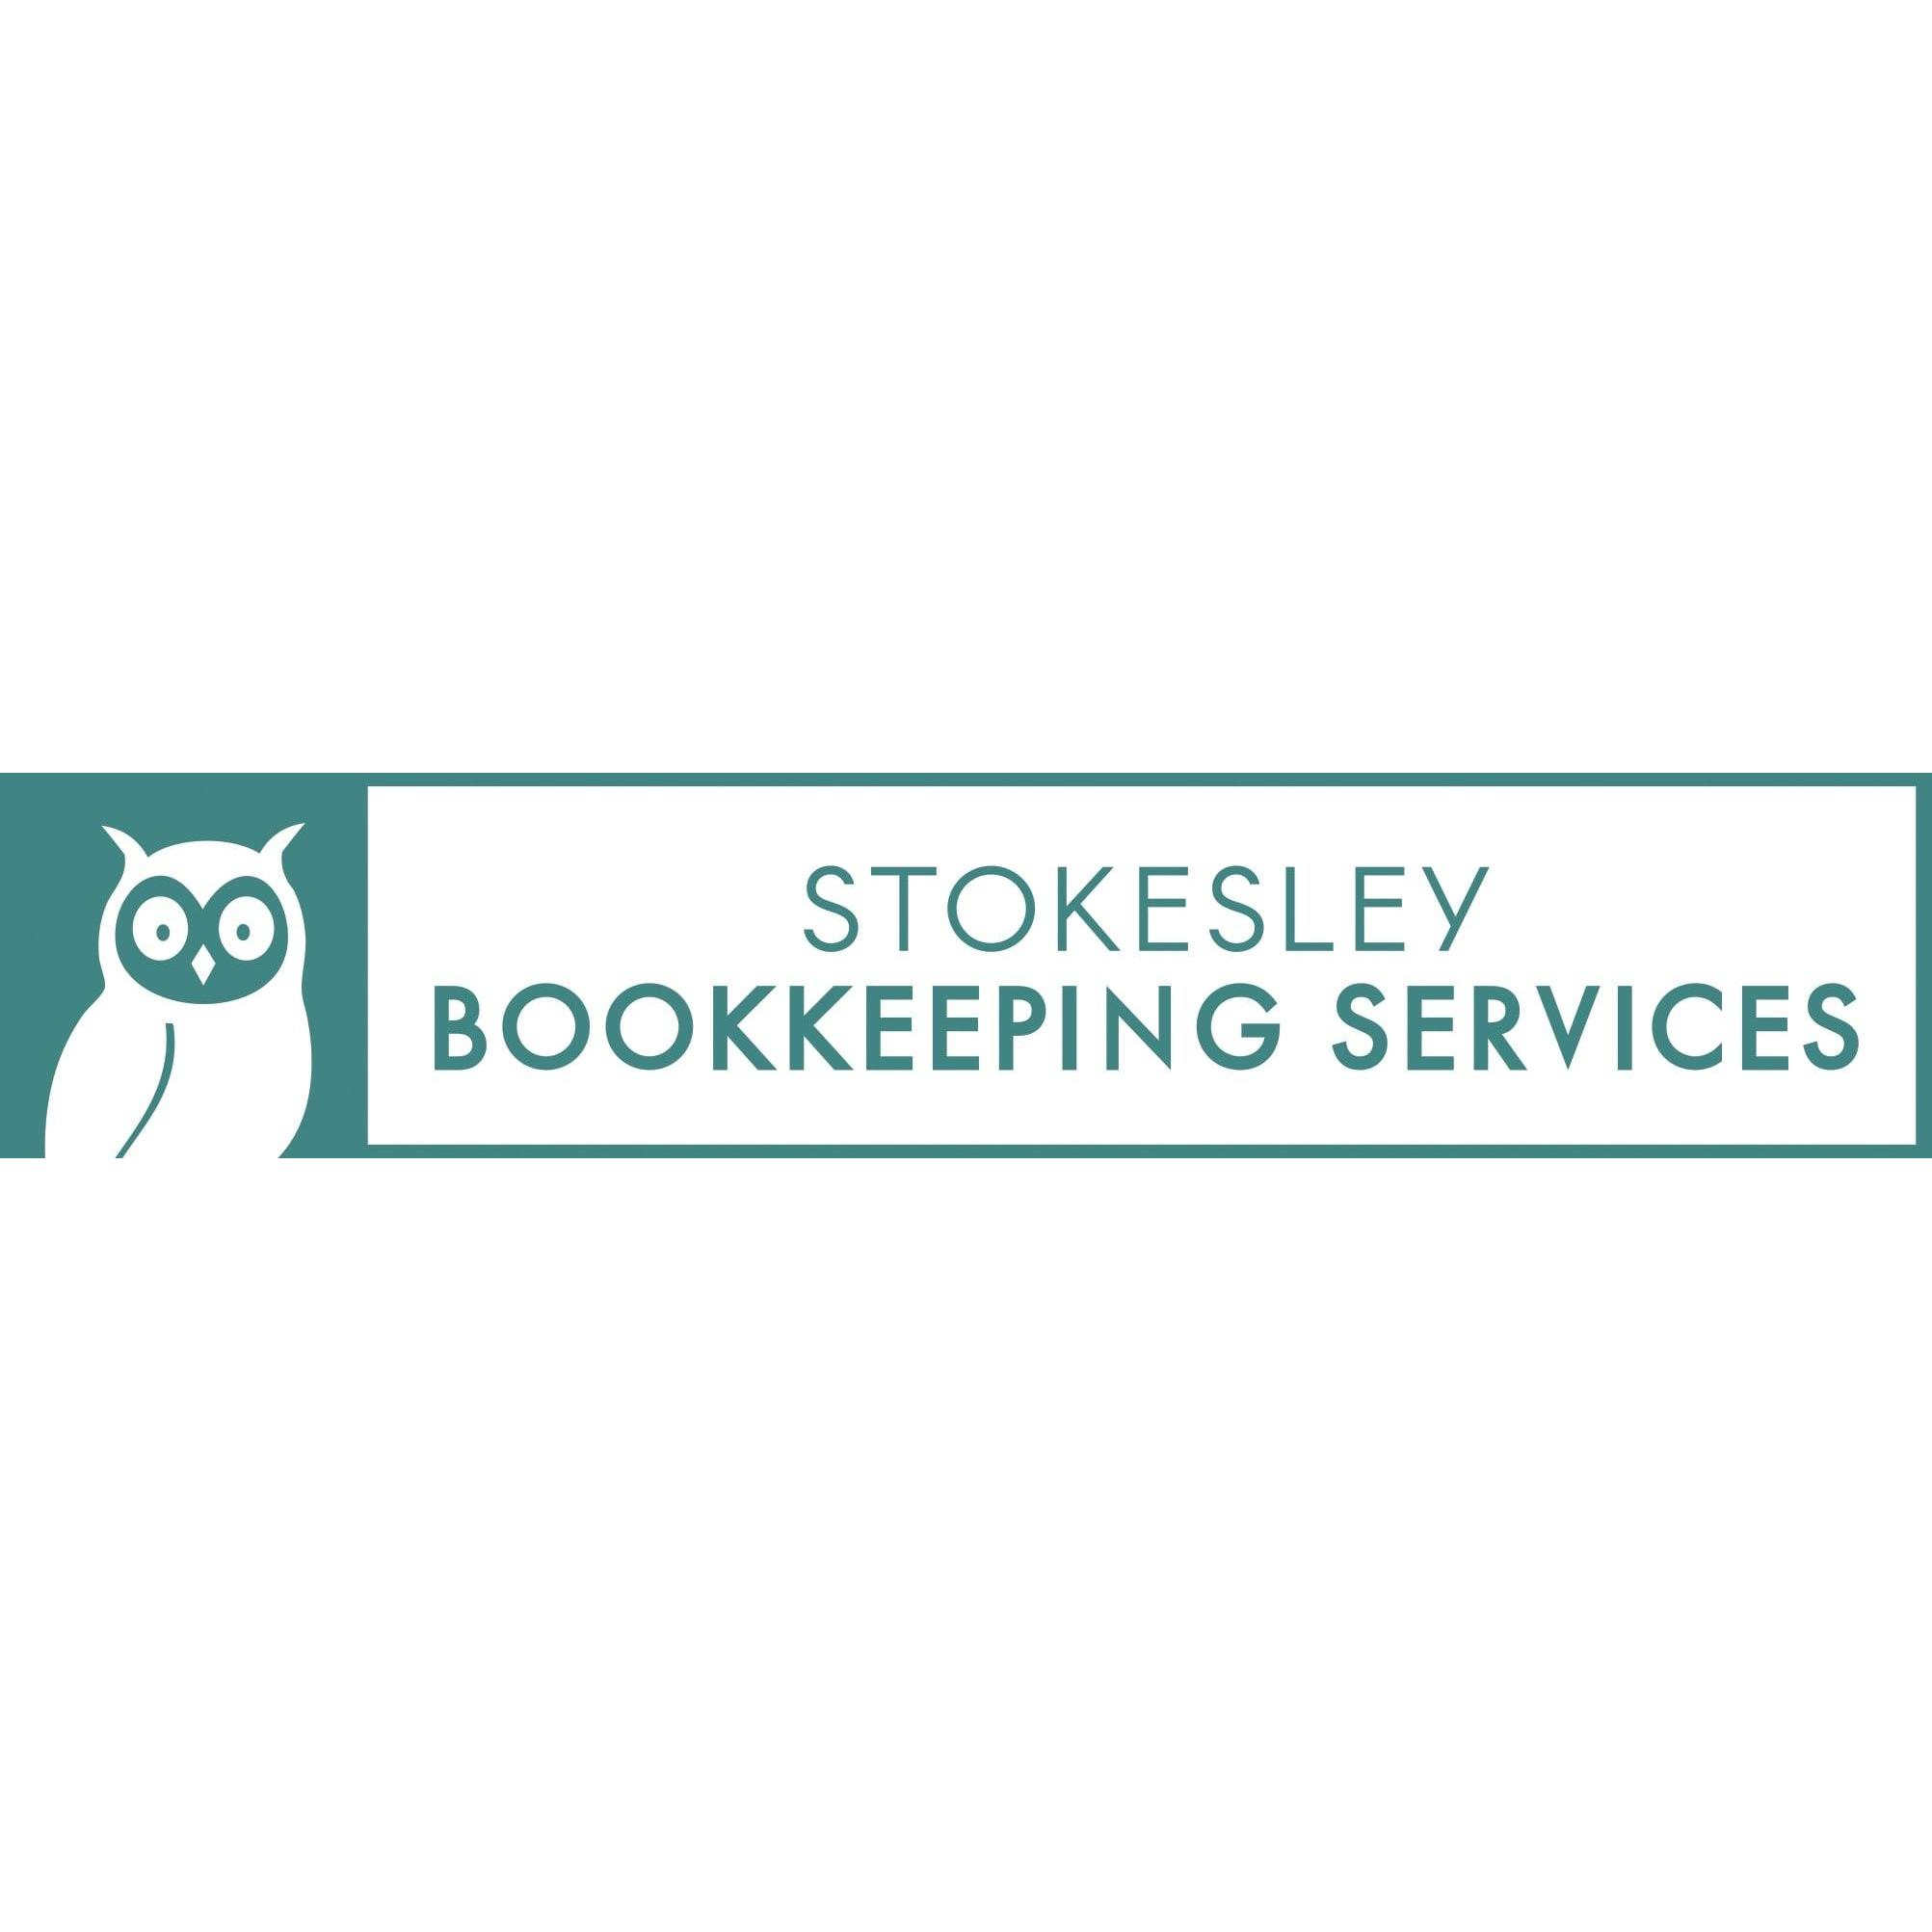 Stokesley Bookkeeping Services - Middlesbrough, North Yorkshire TS9 5EU - 07884 126247 | ShowMeLocal.com